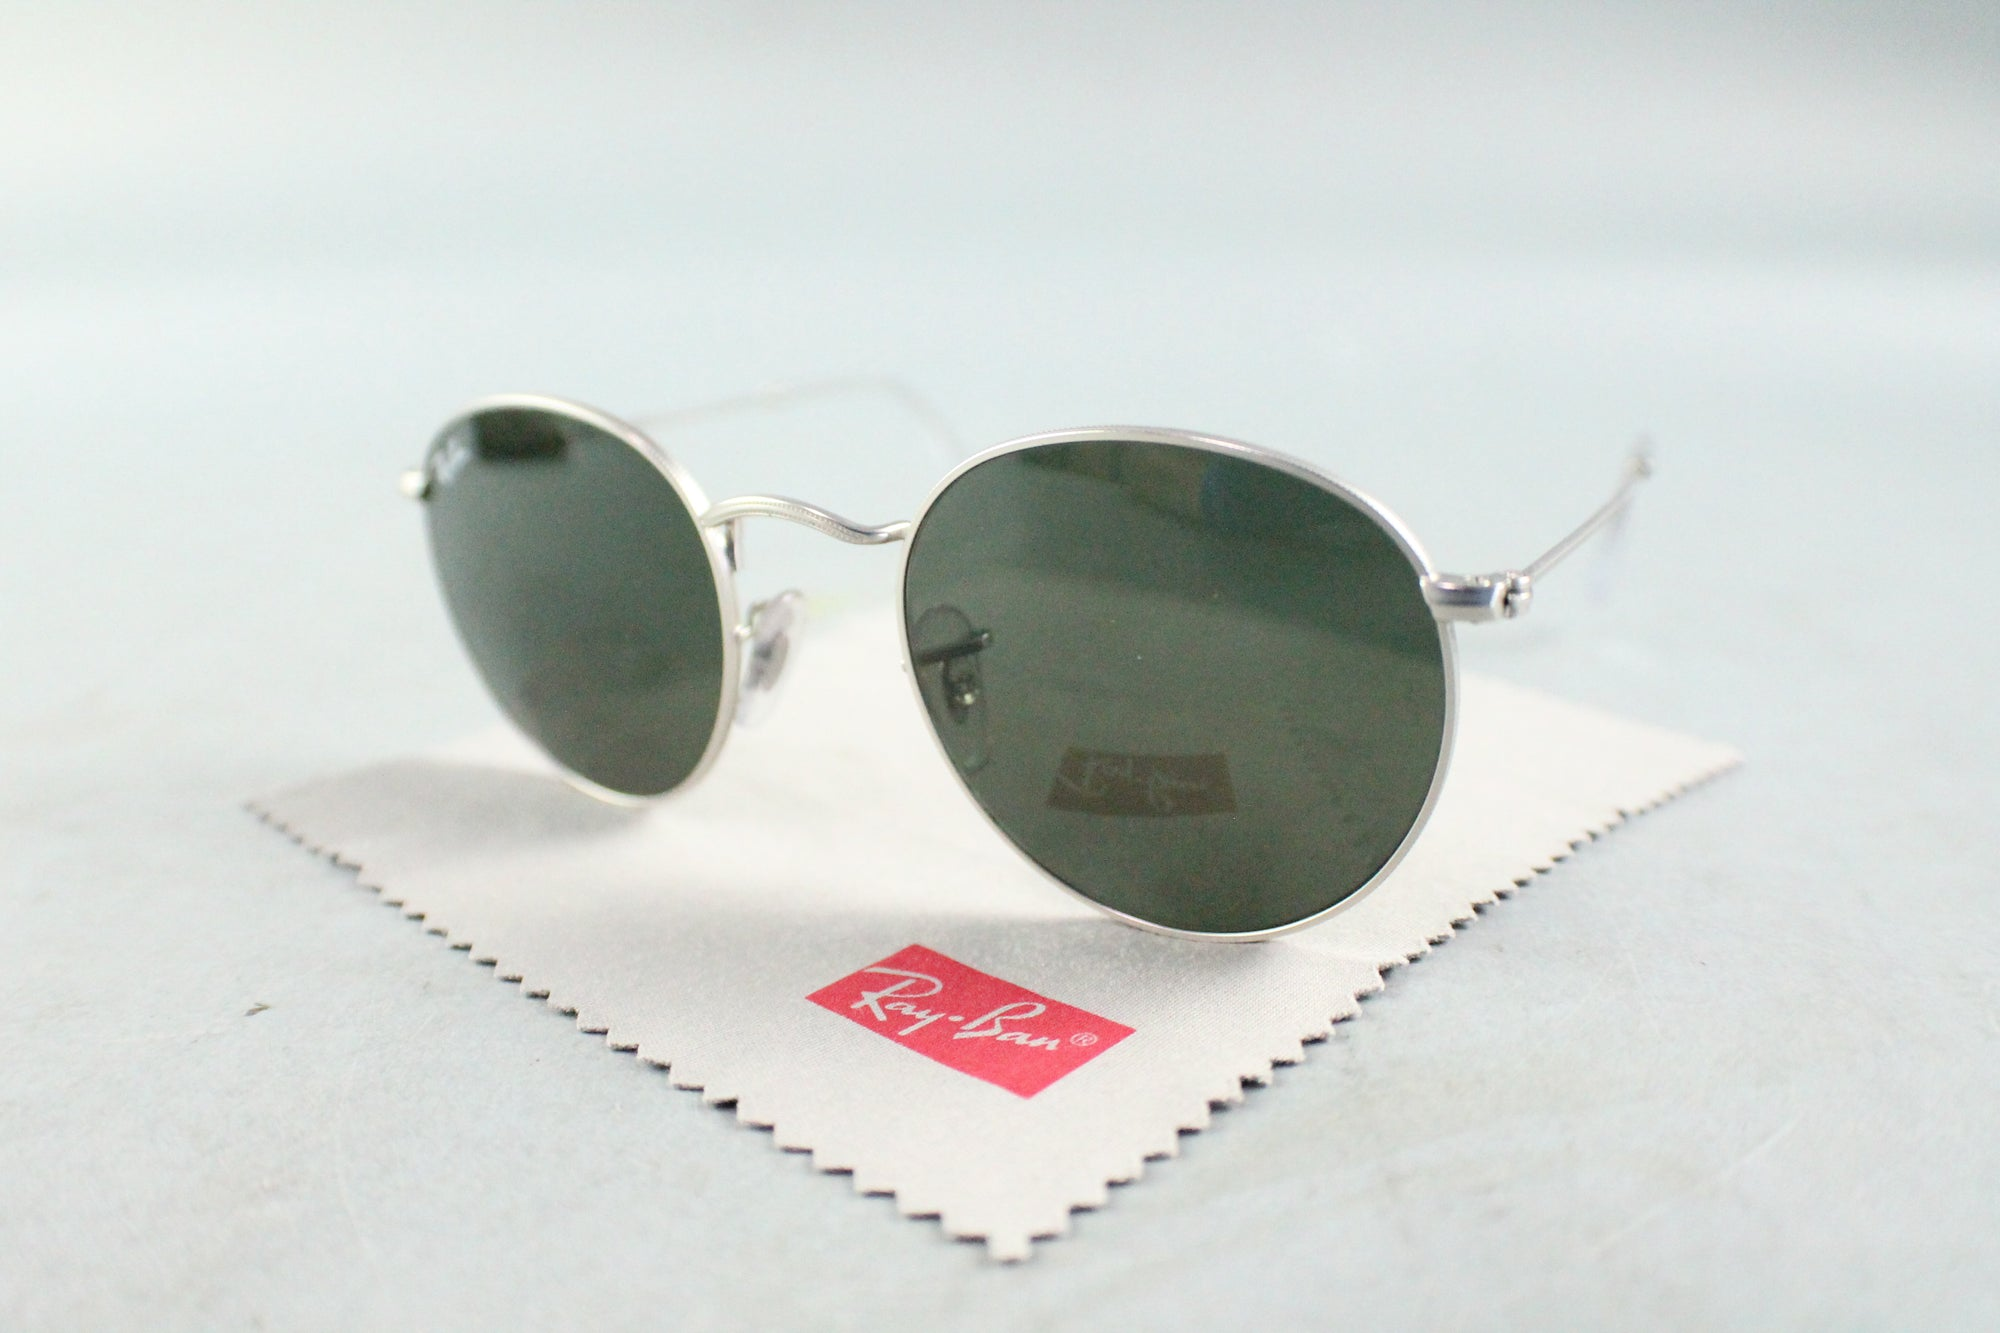 Ray Ban RB 3447 Round Metal Sunglasses 145 Gray Frame